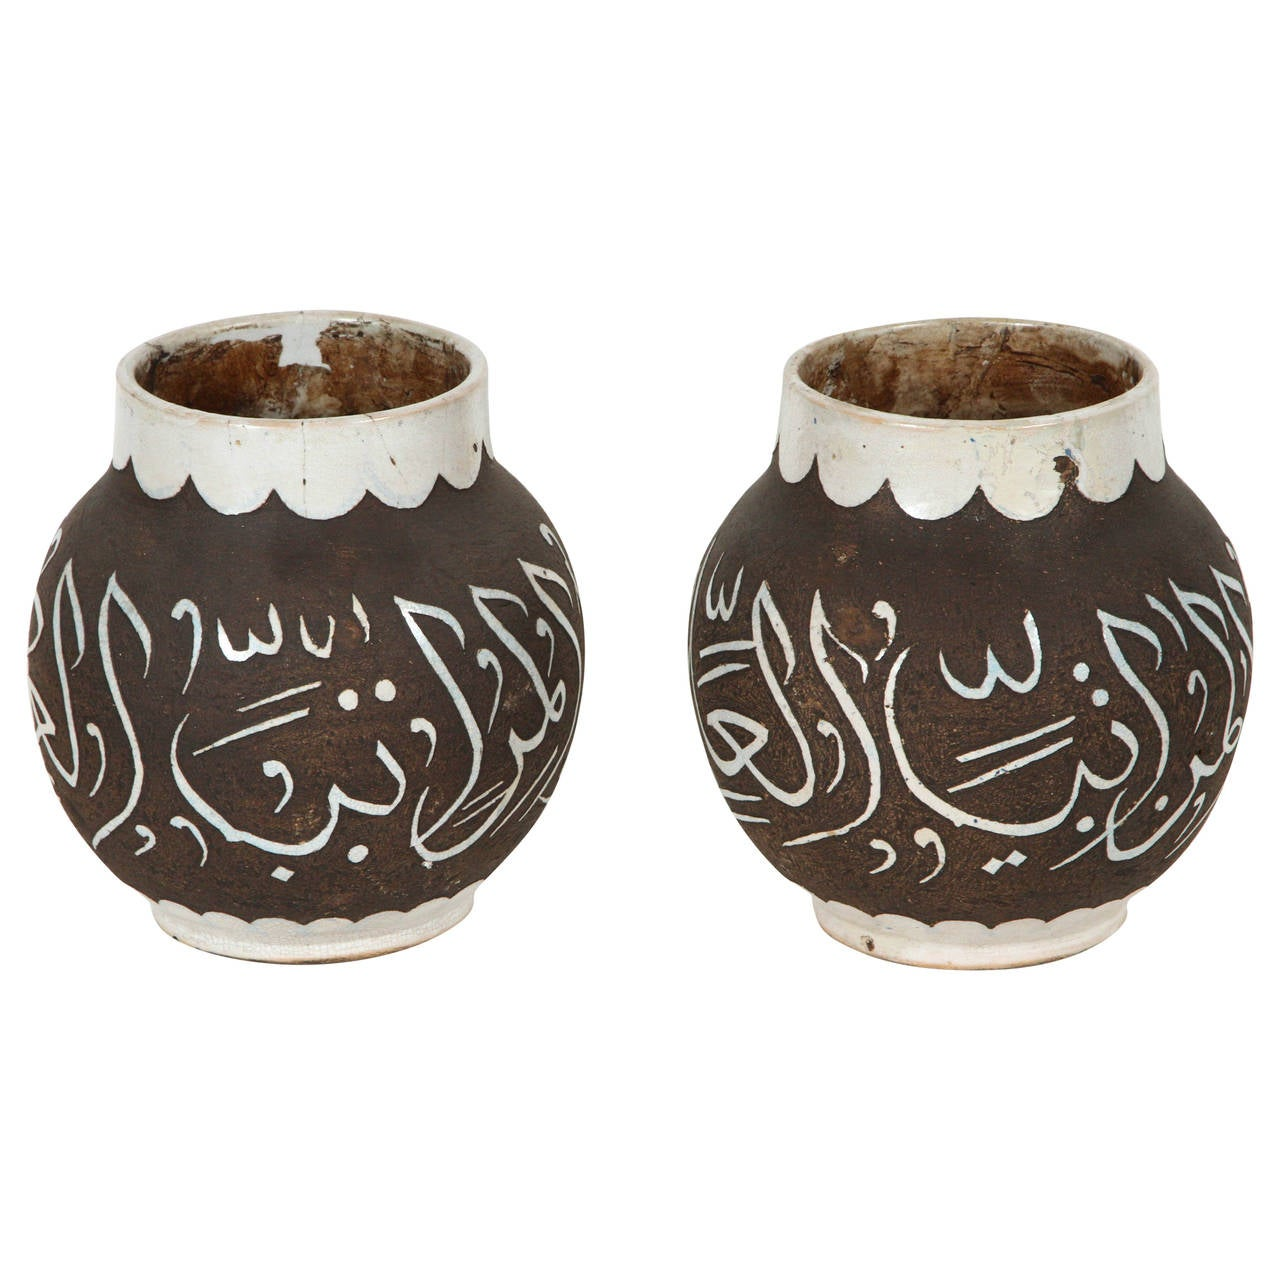 Islamic vases and vessels 26 for sale at 1stdibs pair of moroccan ceramic vases with arabic calligraphy reviewsmspy